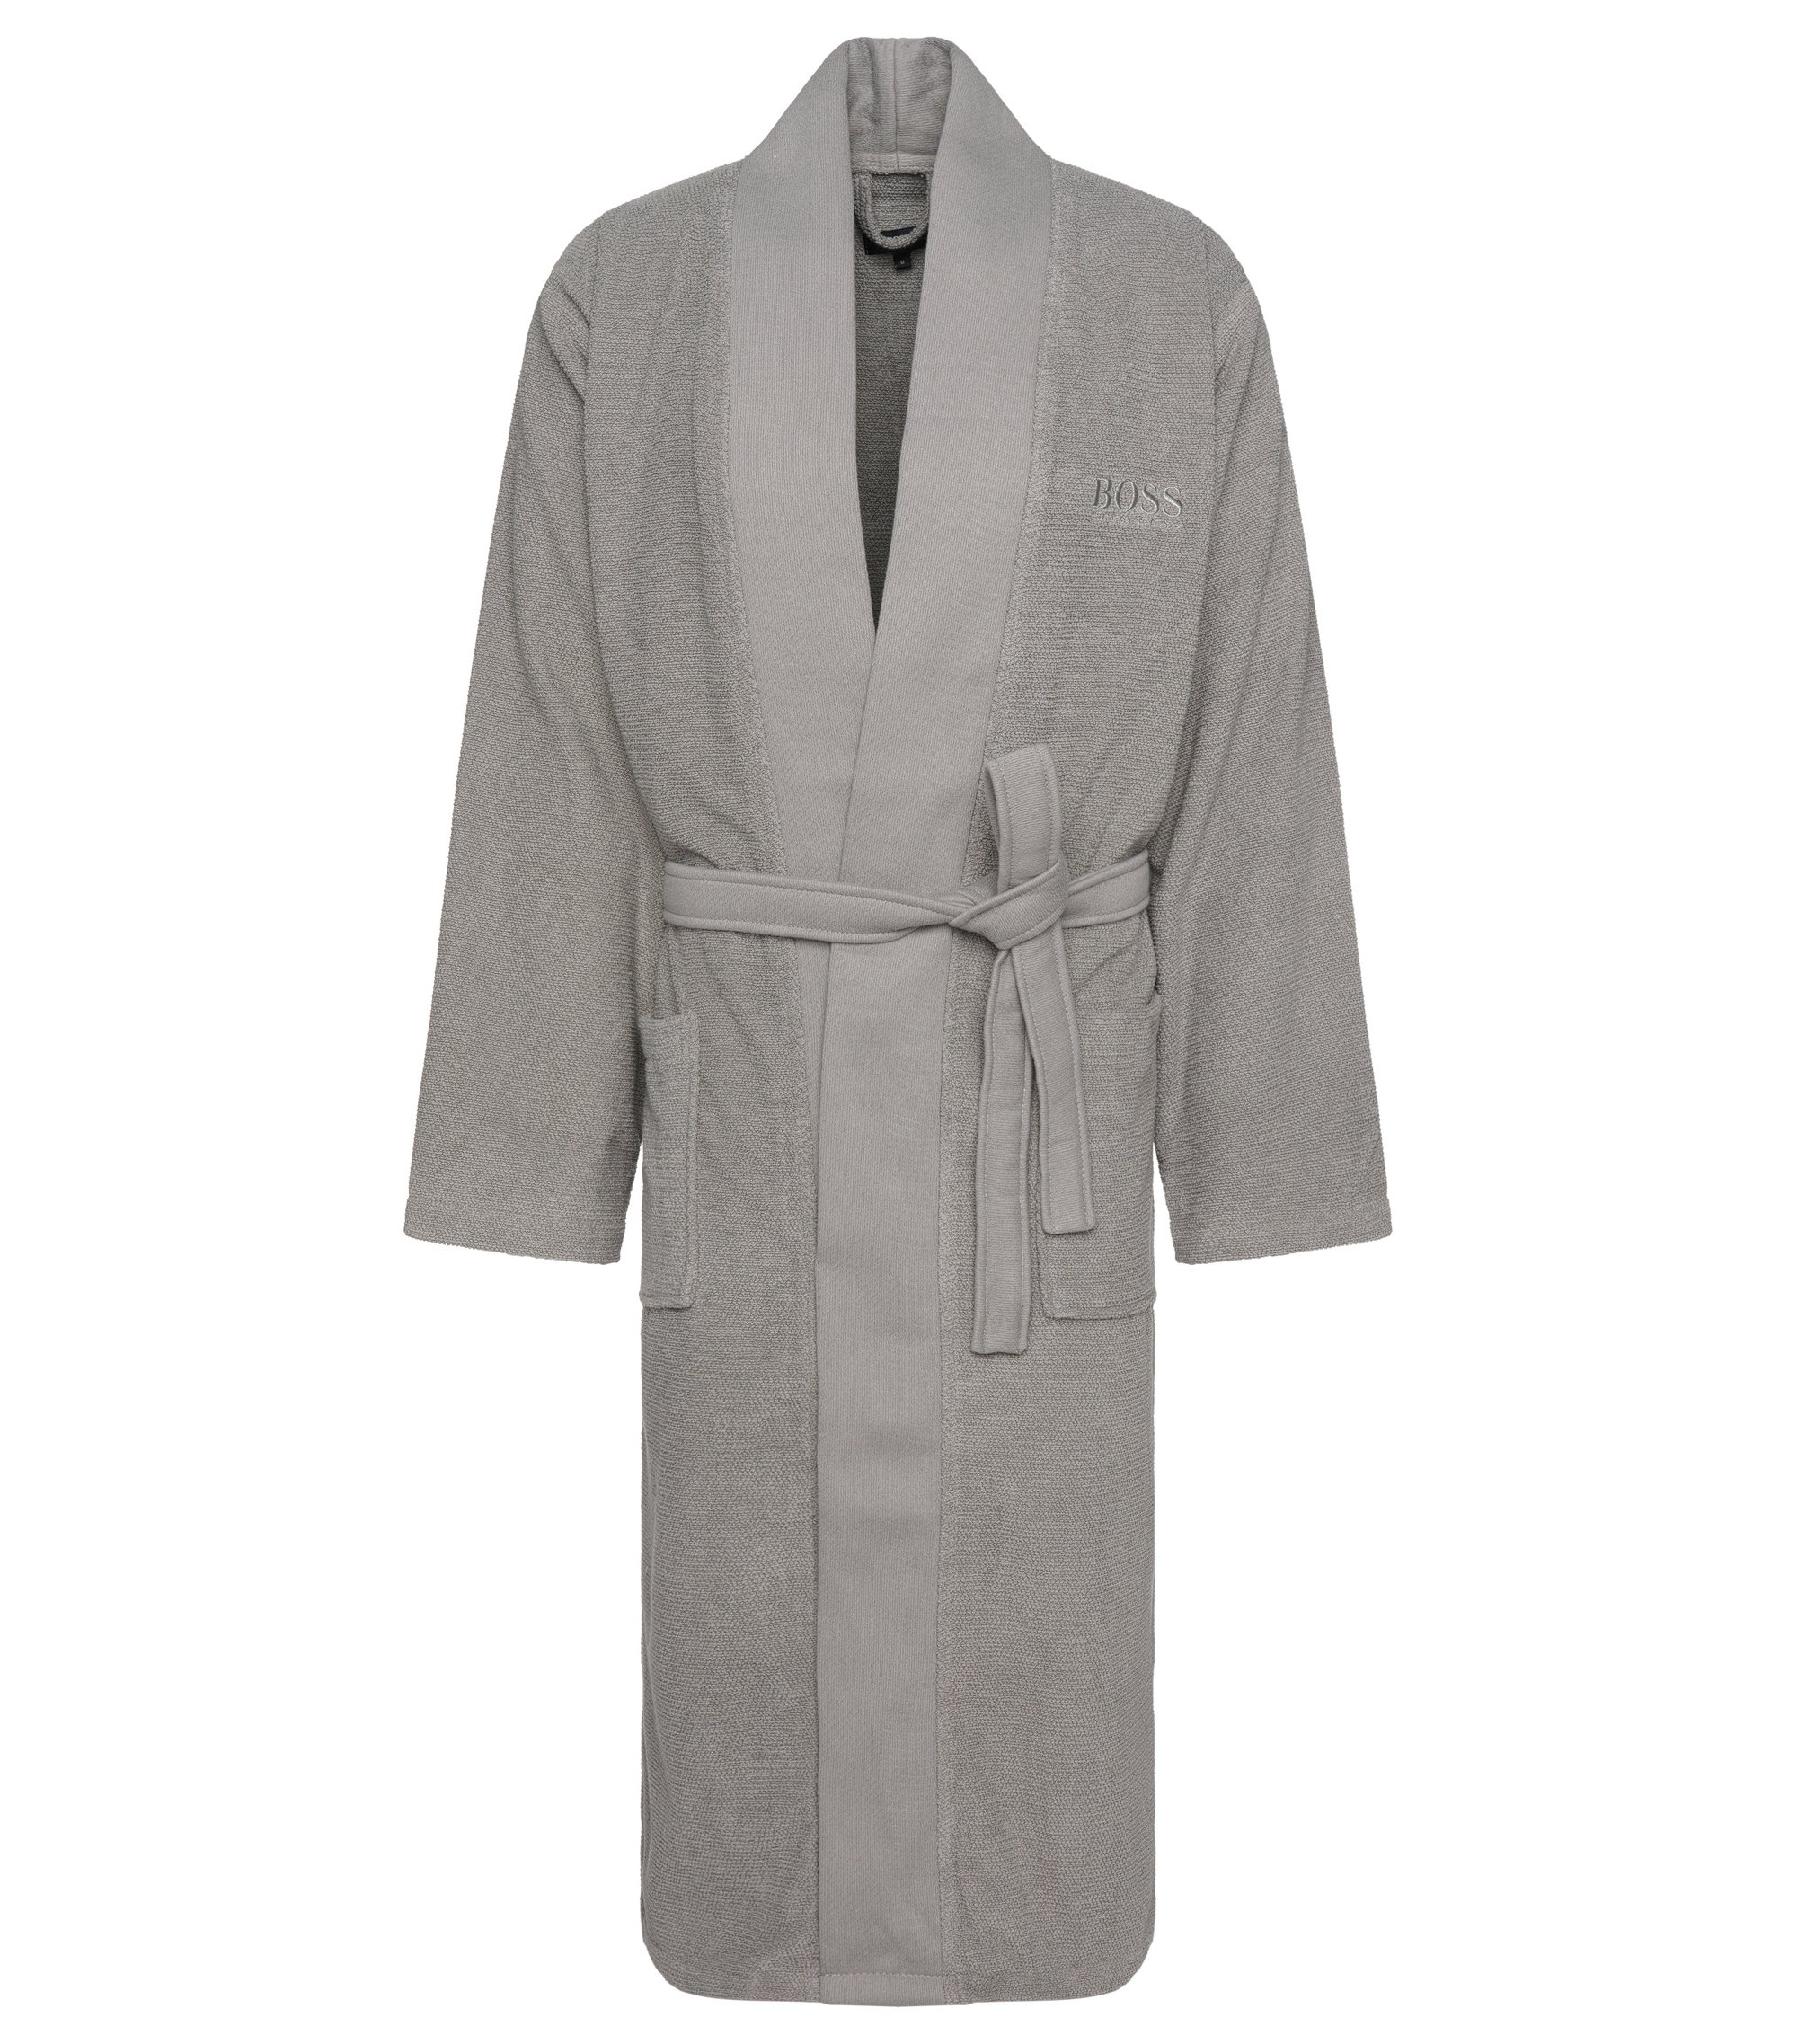 Kimono-style bathrobe in combed Aegean cotton, Silver